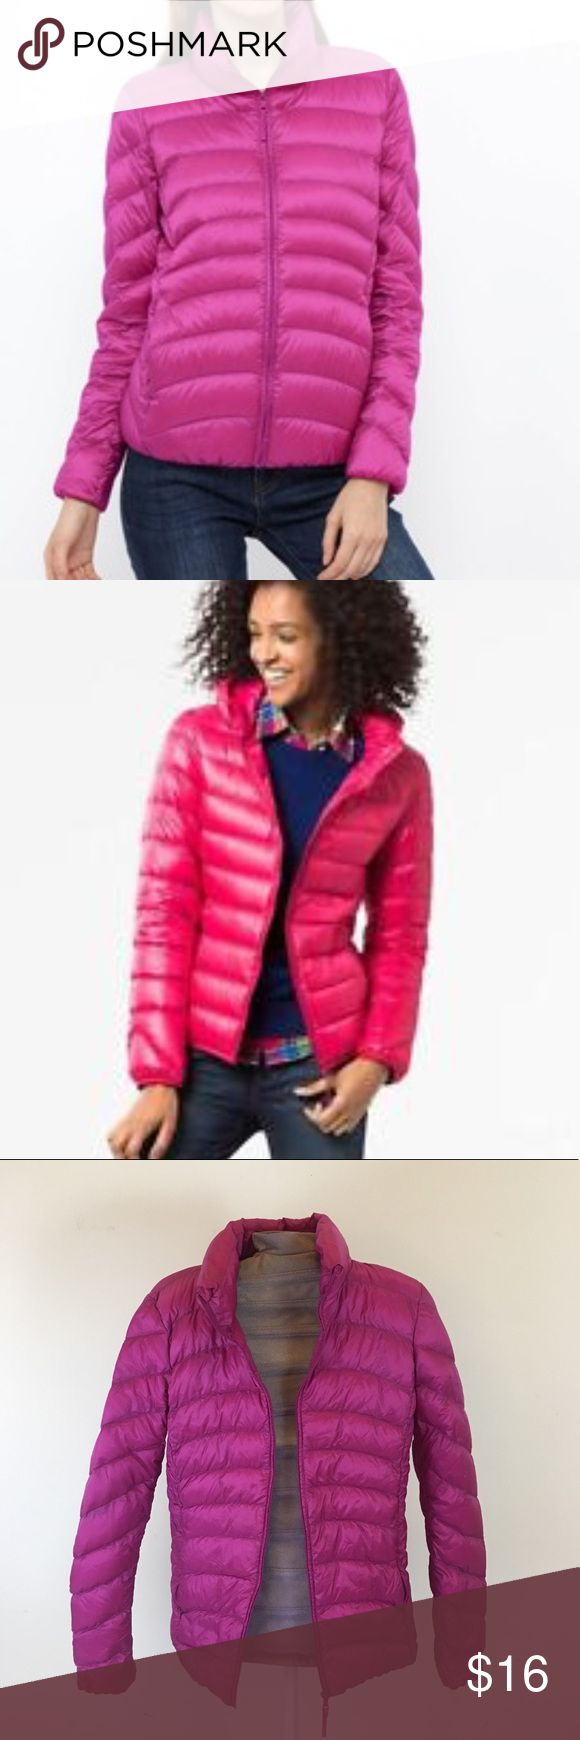 Uniqlo Down Puffer Jacket ❤️ Rhododendron colored Puffer: nylon shell, Genuine down full. Packable. Size small. Great condition. Retail $100. Uniqlo Jackets & Coats Puffers